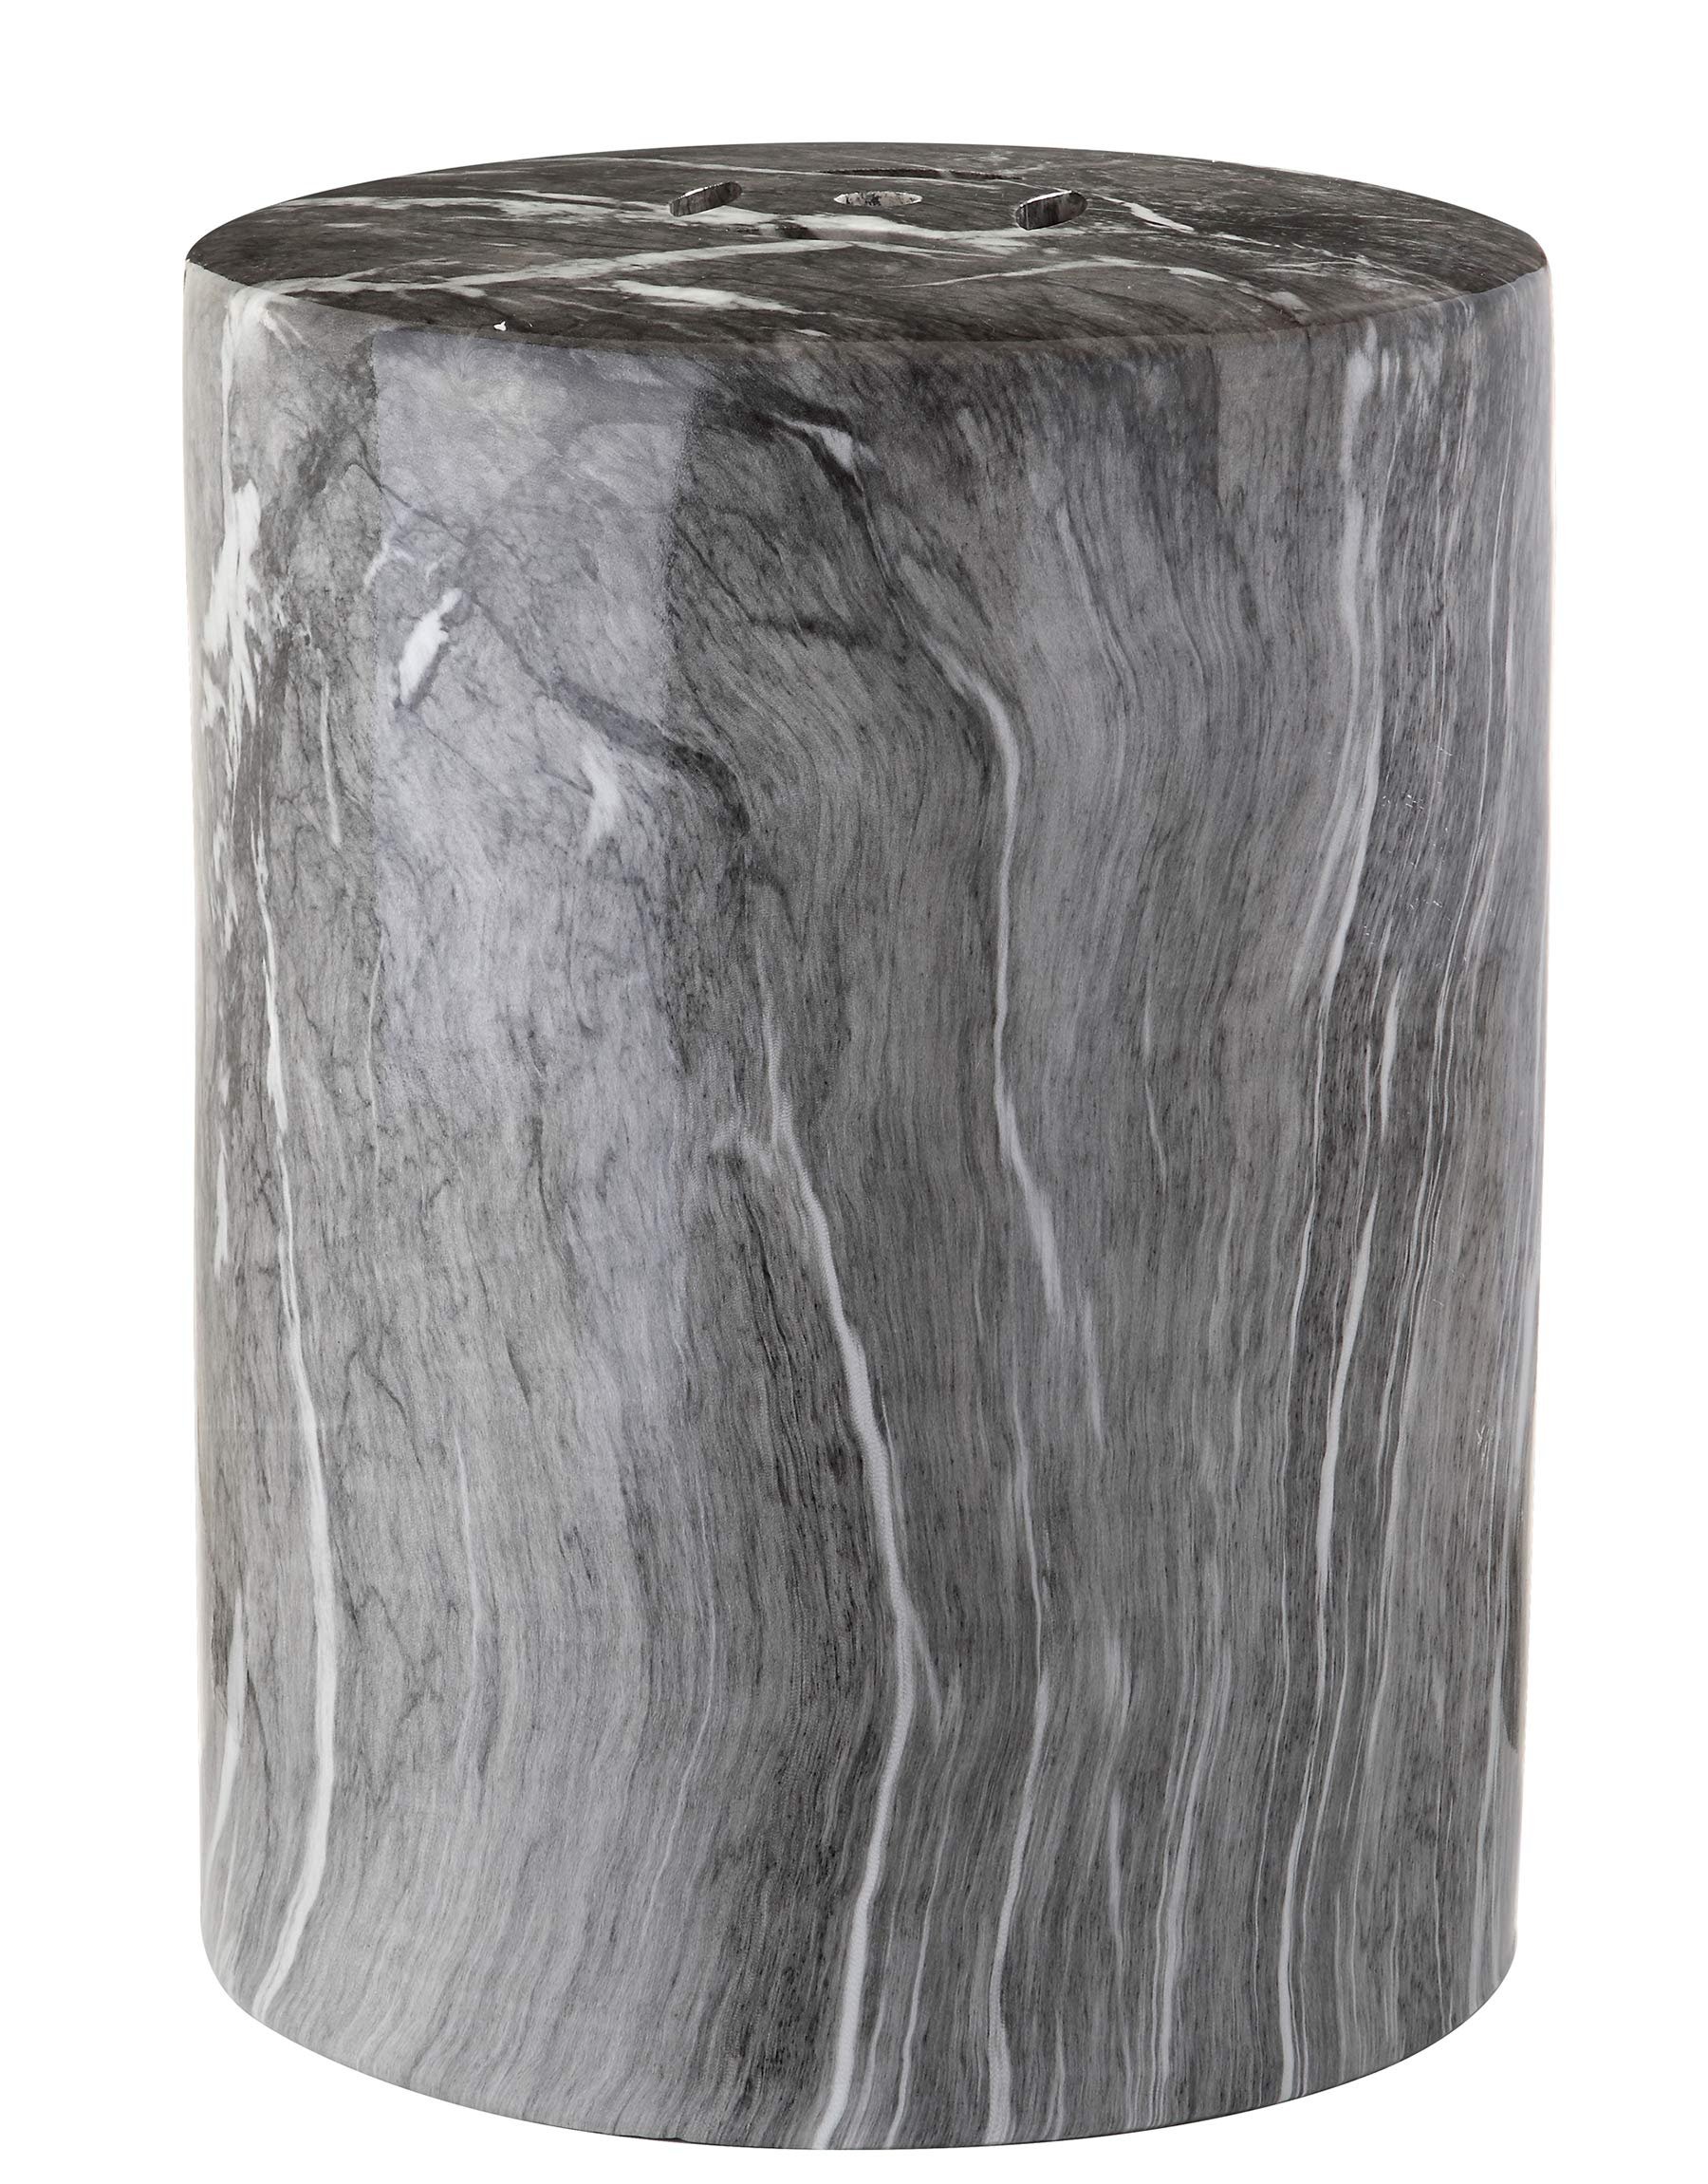 Safavieh ACS4566A Castle Collection Forster Marble Garden Stool, Black by Safavieh (Image #2)